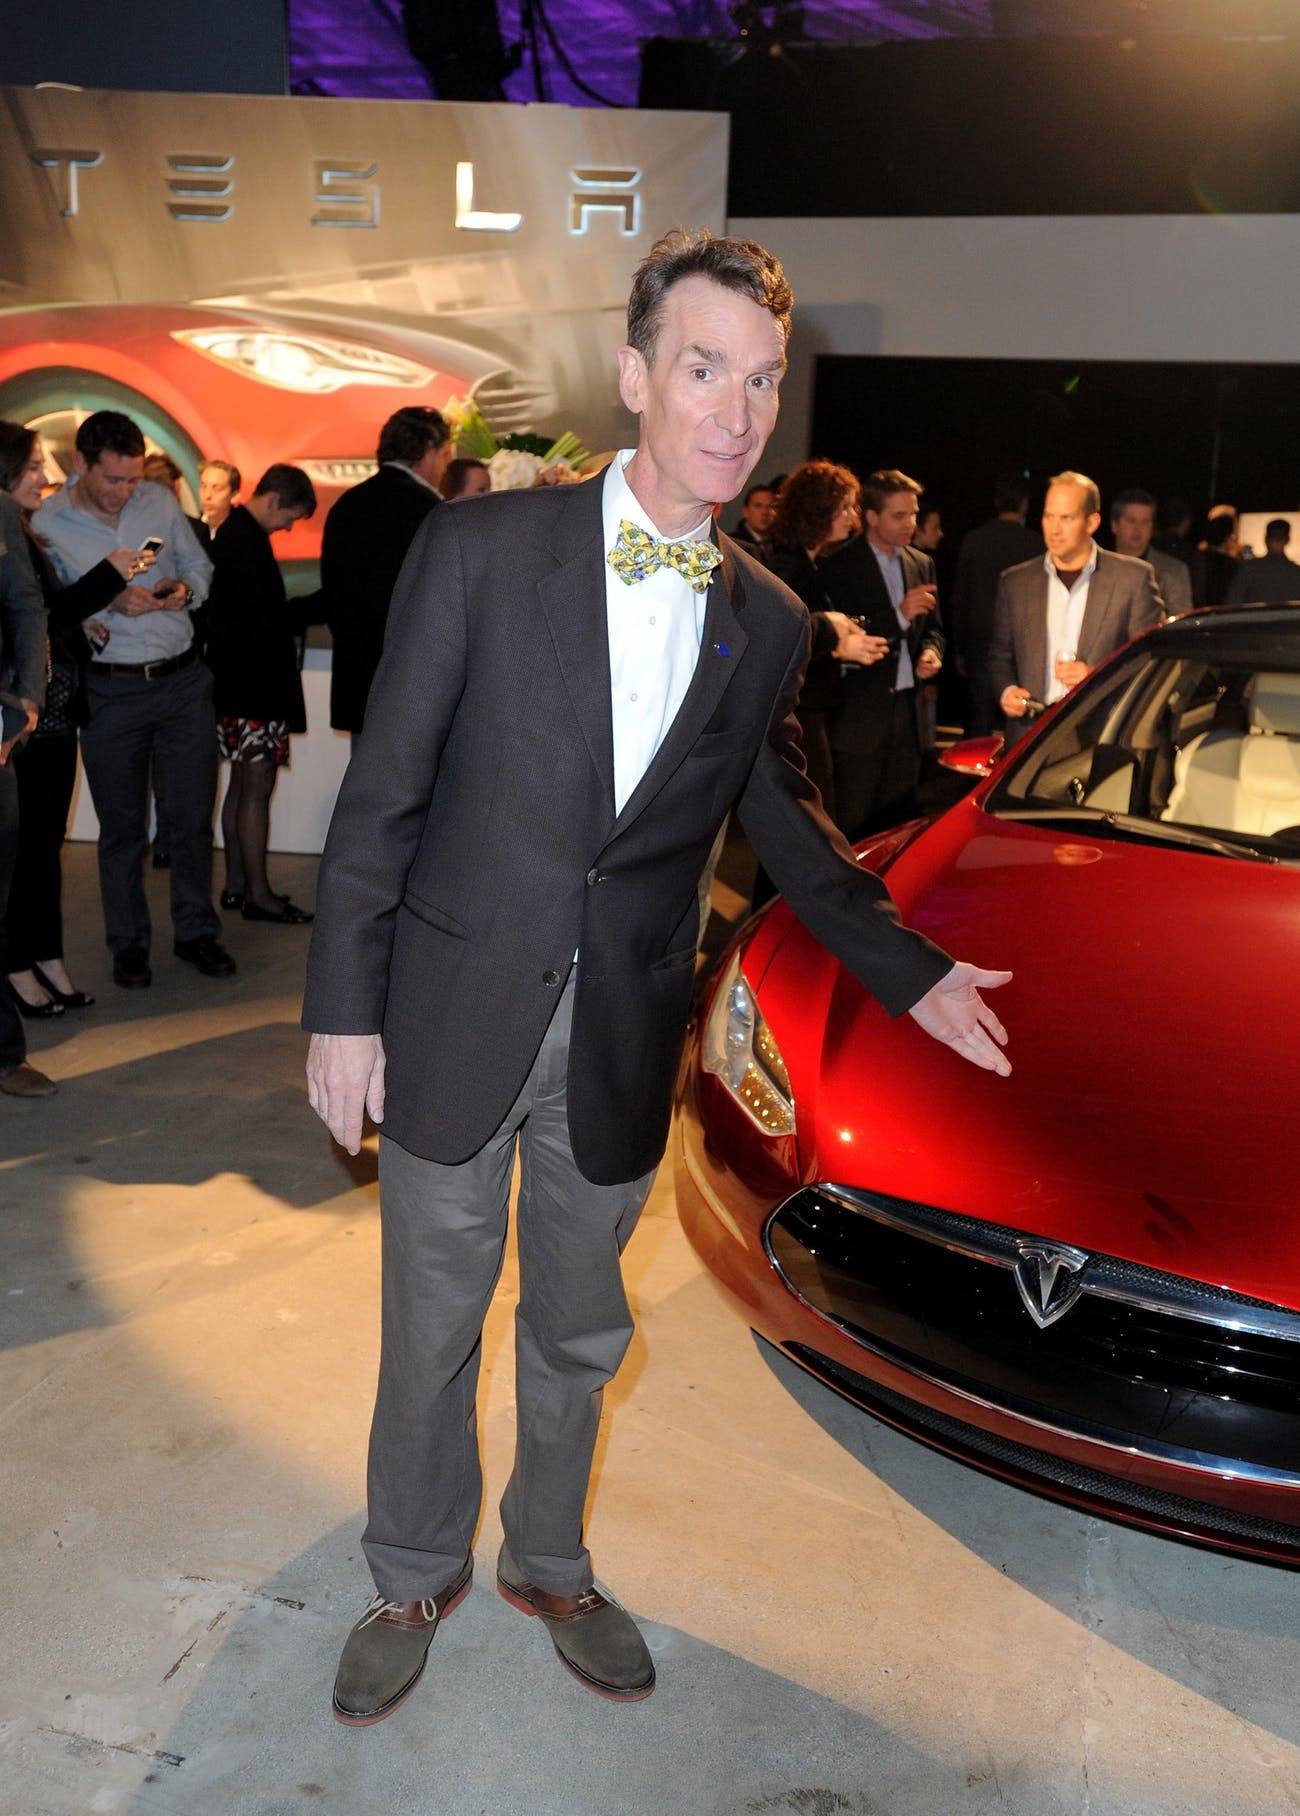 img 0256 10 Things You Probably Didn't Know About Bill Nye The Science Guy